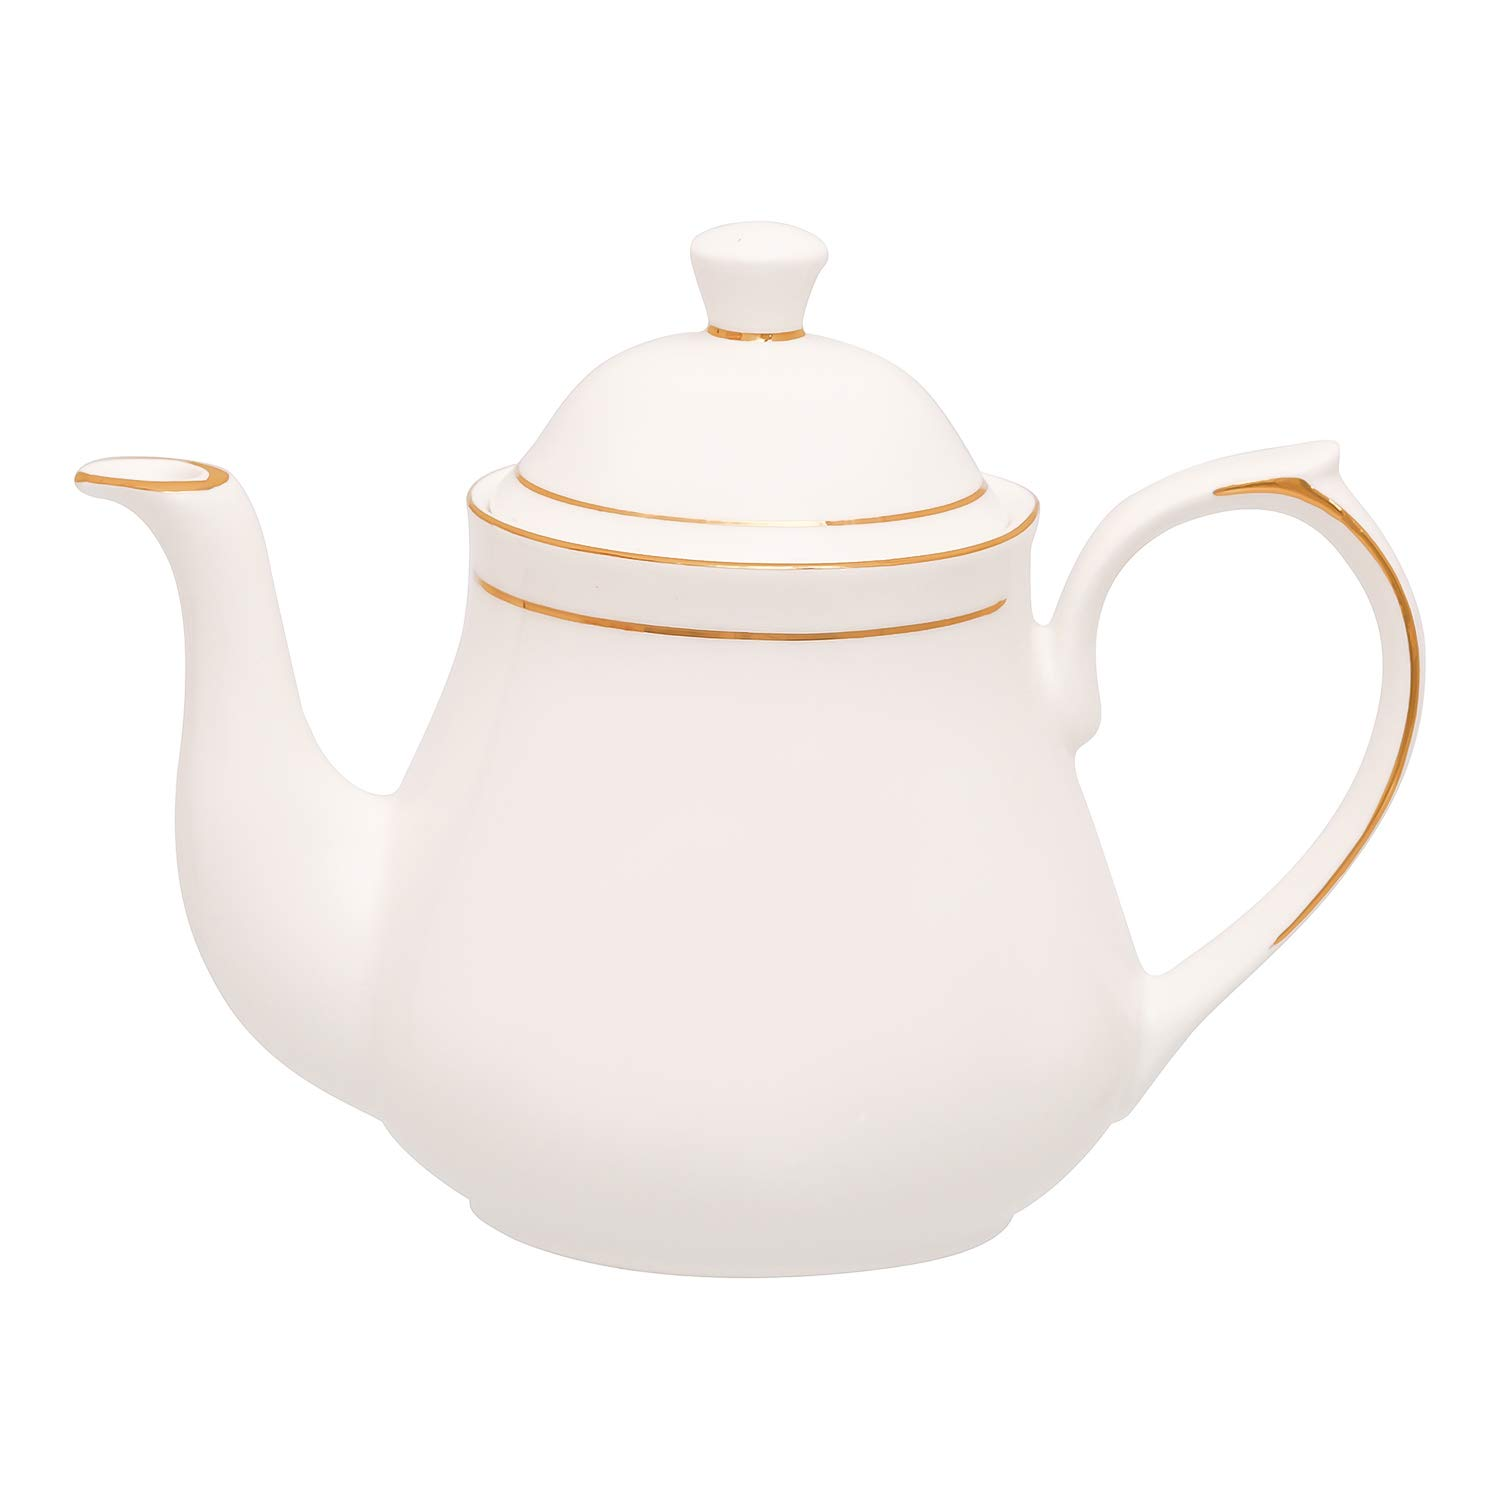 Bone China Gold Line Tea Kettle Tea Pot Home - 600 ML, 1pc, Serving for 3